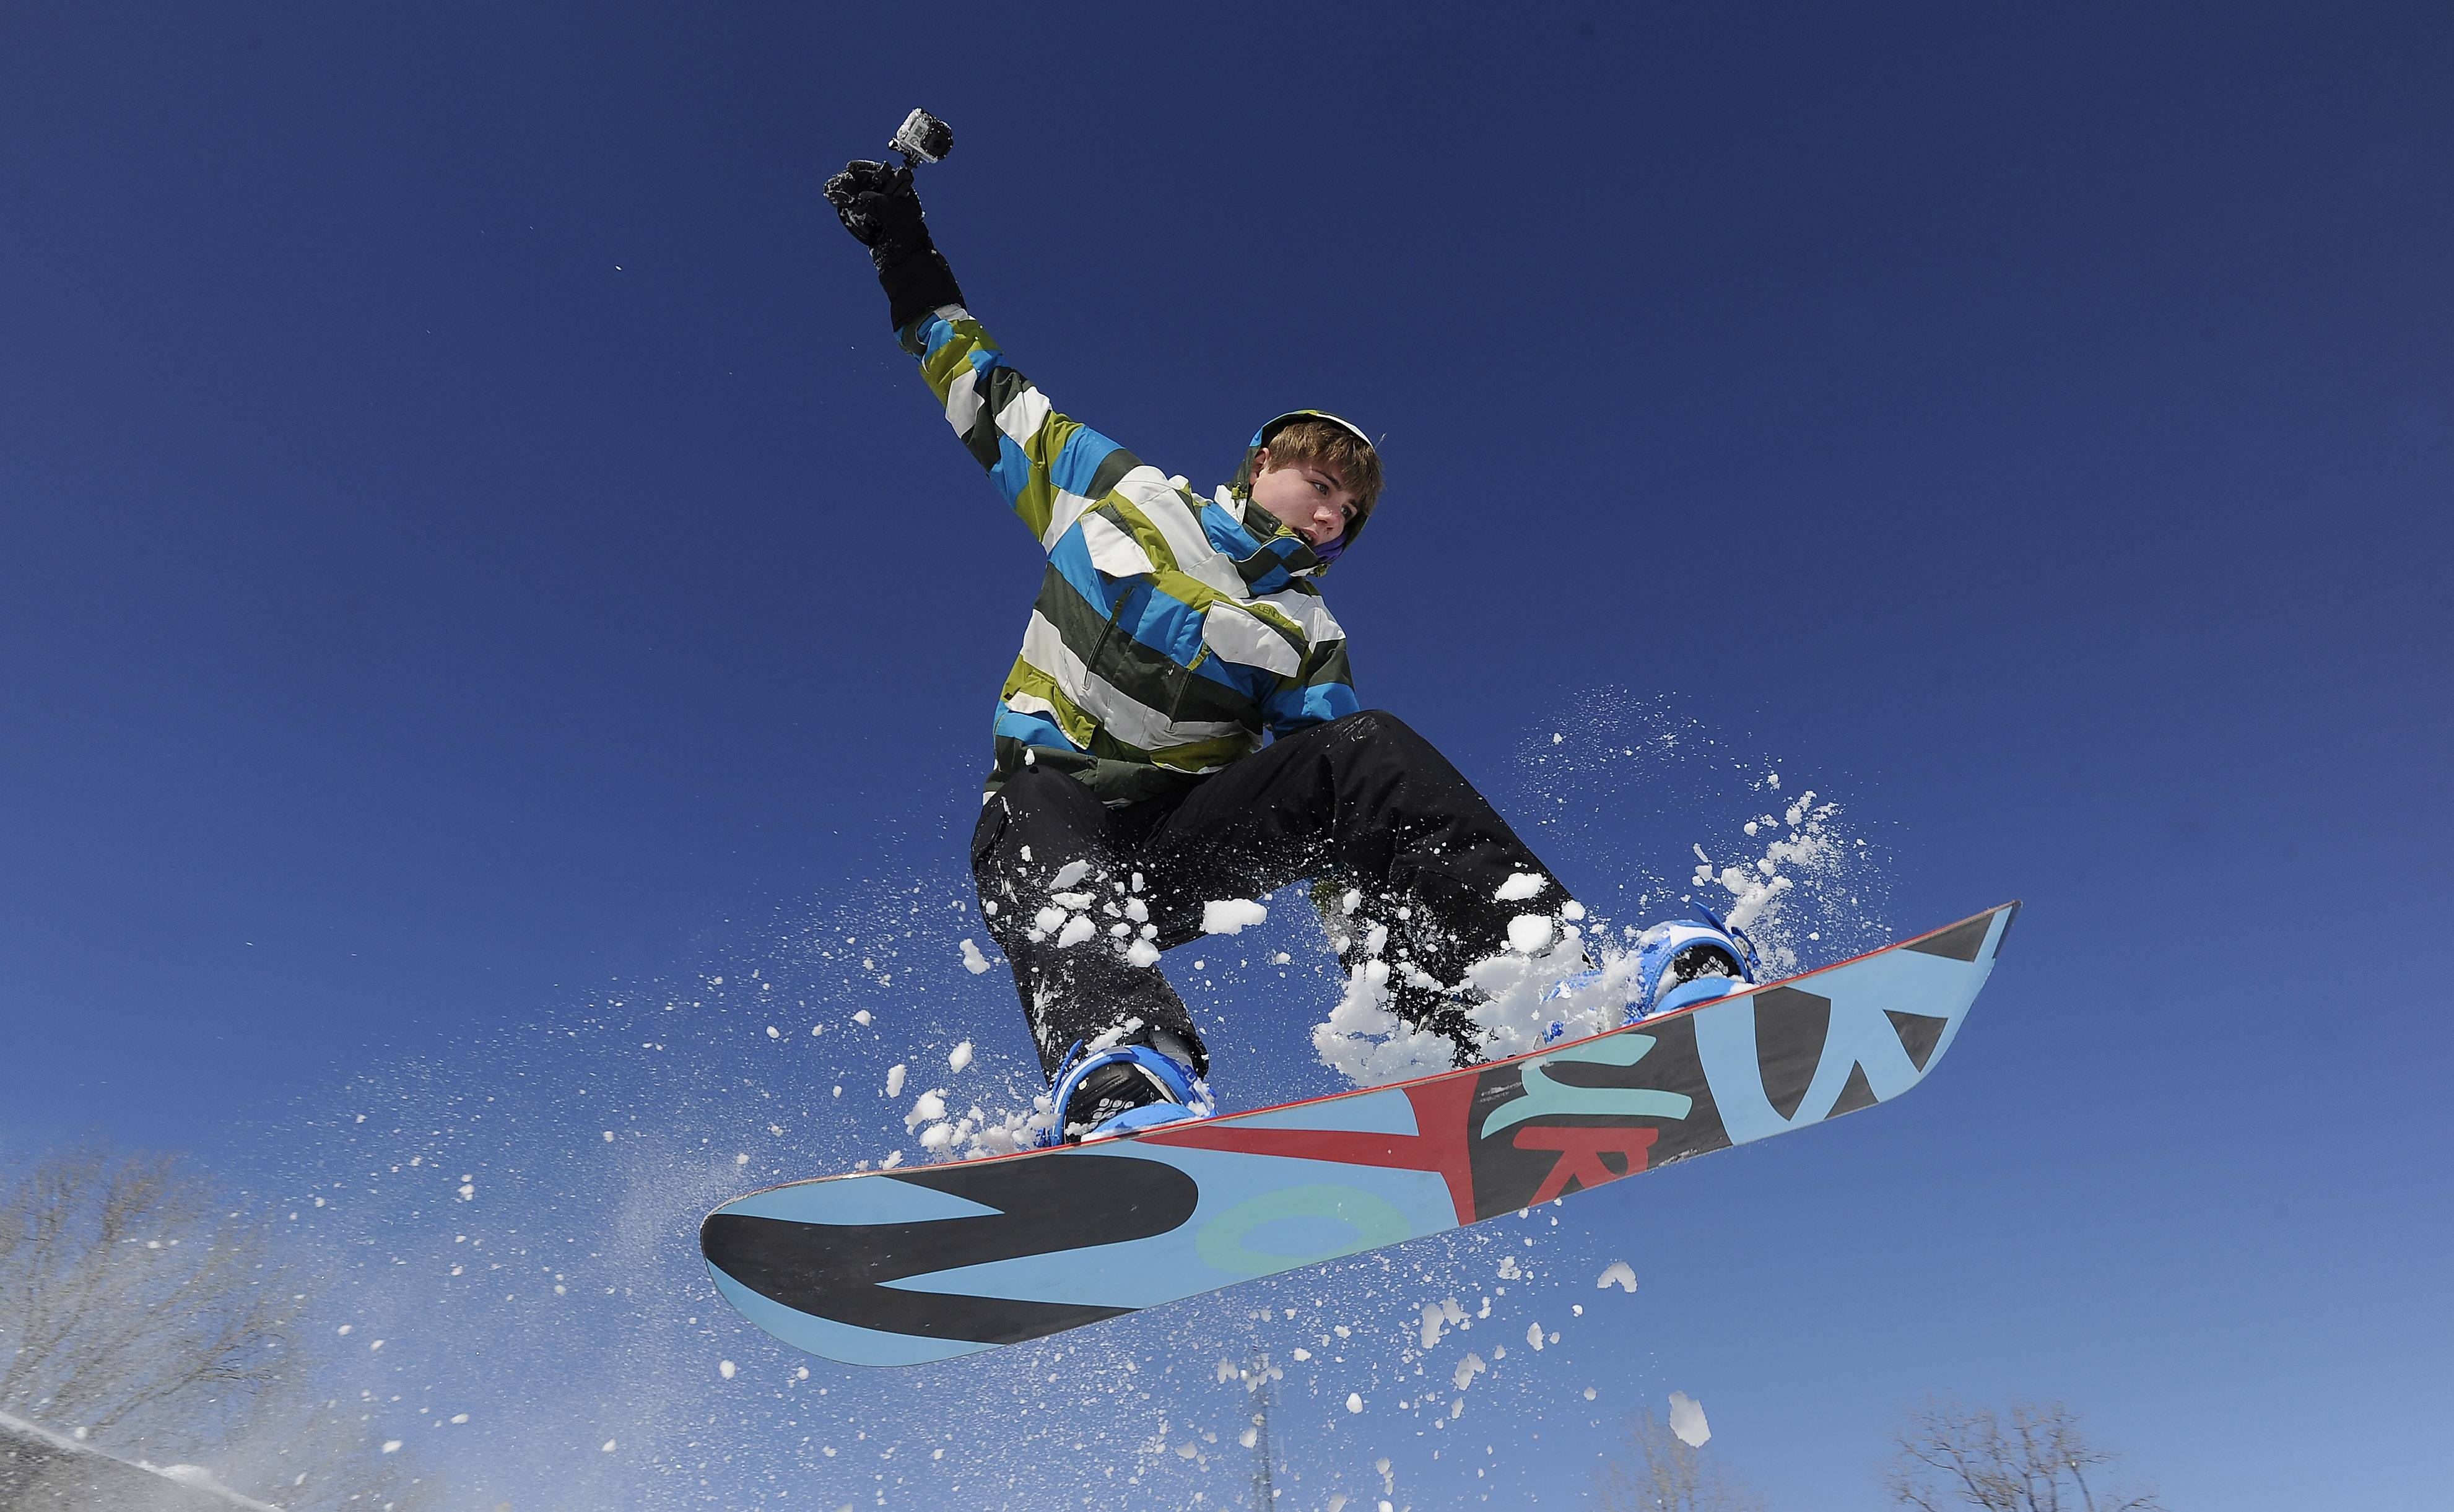 Brandon Ruetche, 14, of Arlington Heights, soars into the blue on fresh powder at Melas Park in Mt. Prospect.